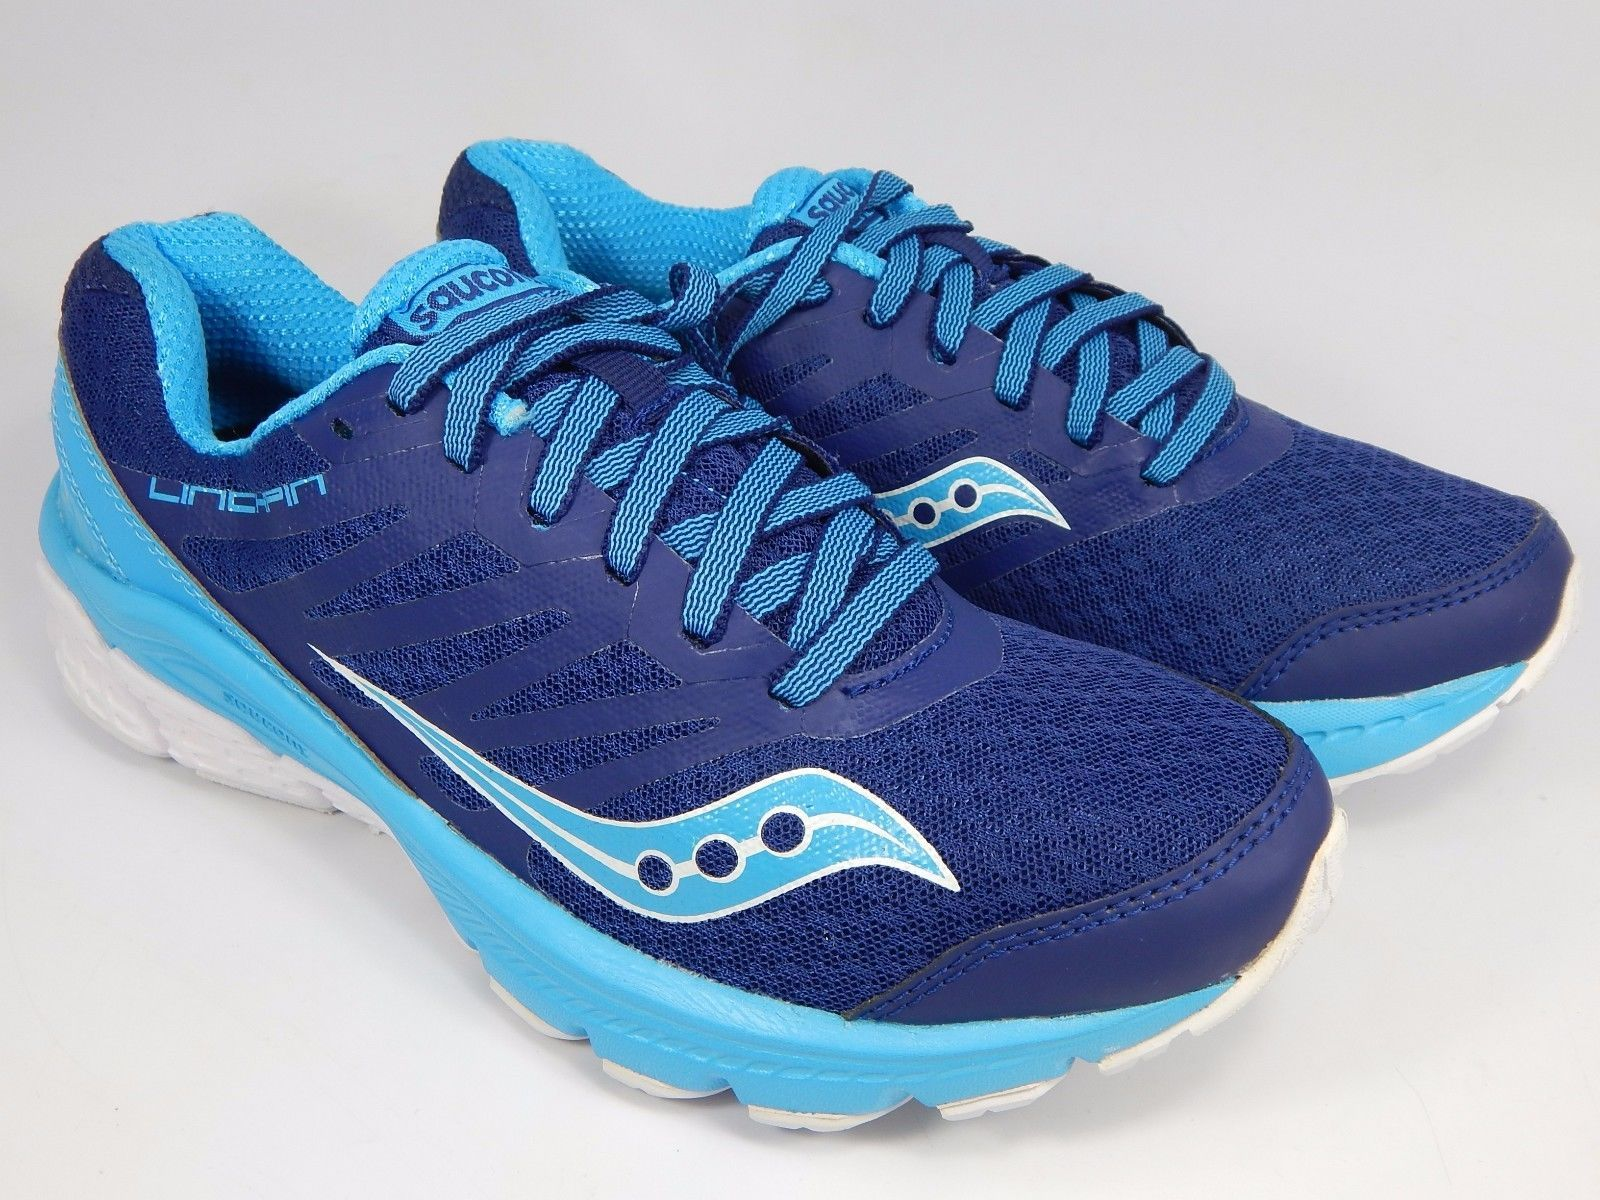 Saucony Linchpin Women's Running Shoes Size US 7 M (B) EU 38 Blue White S15334-3